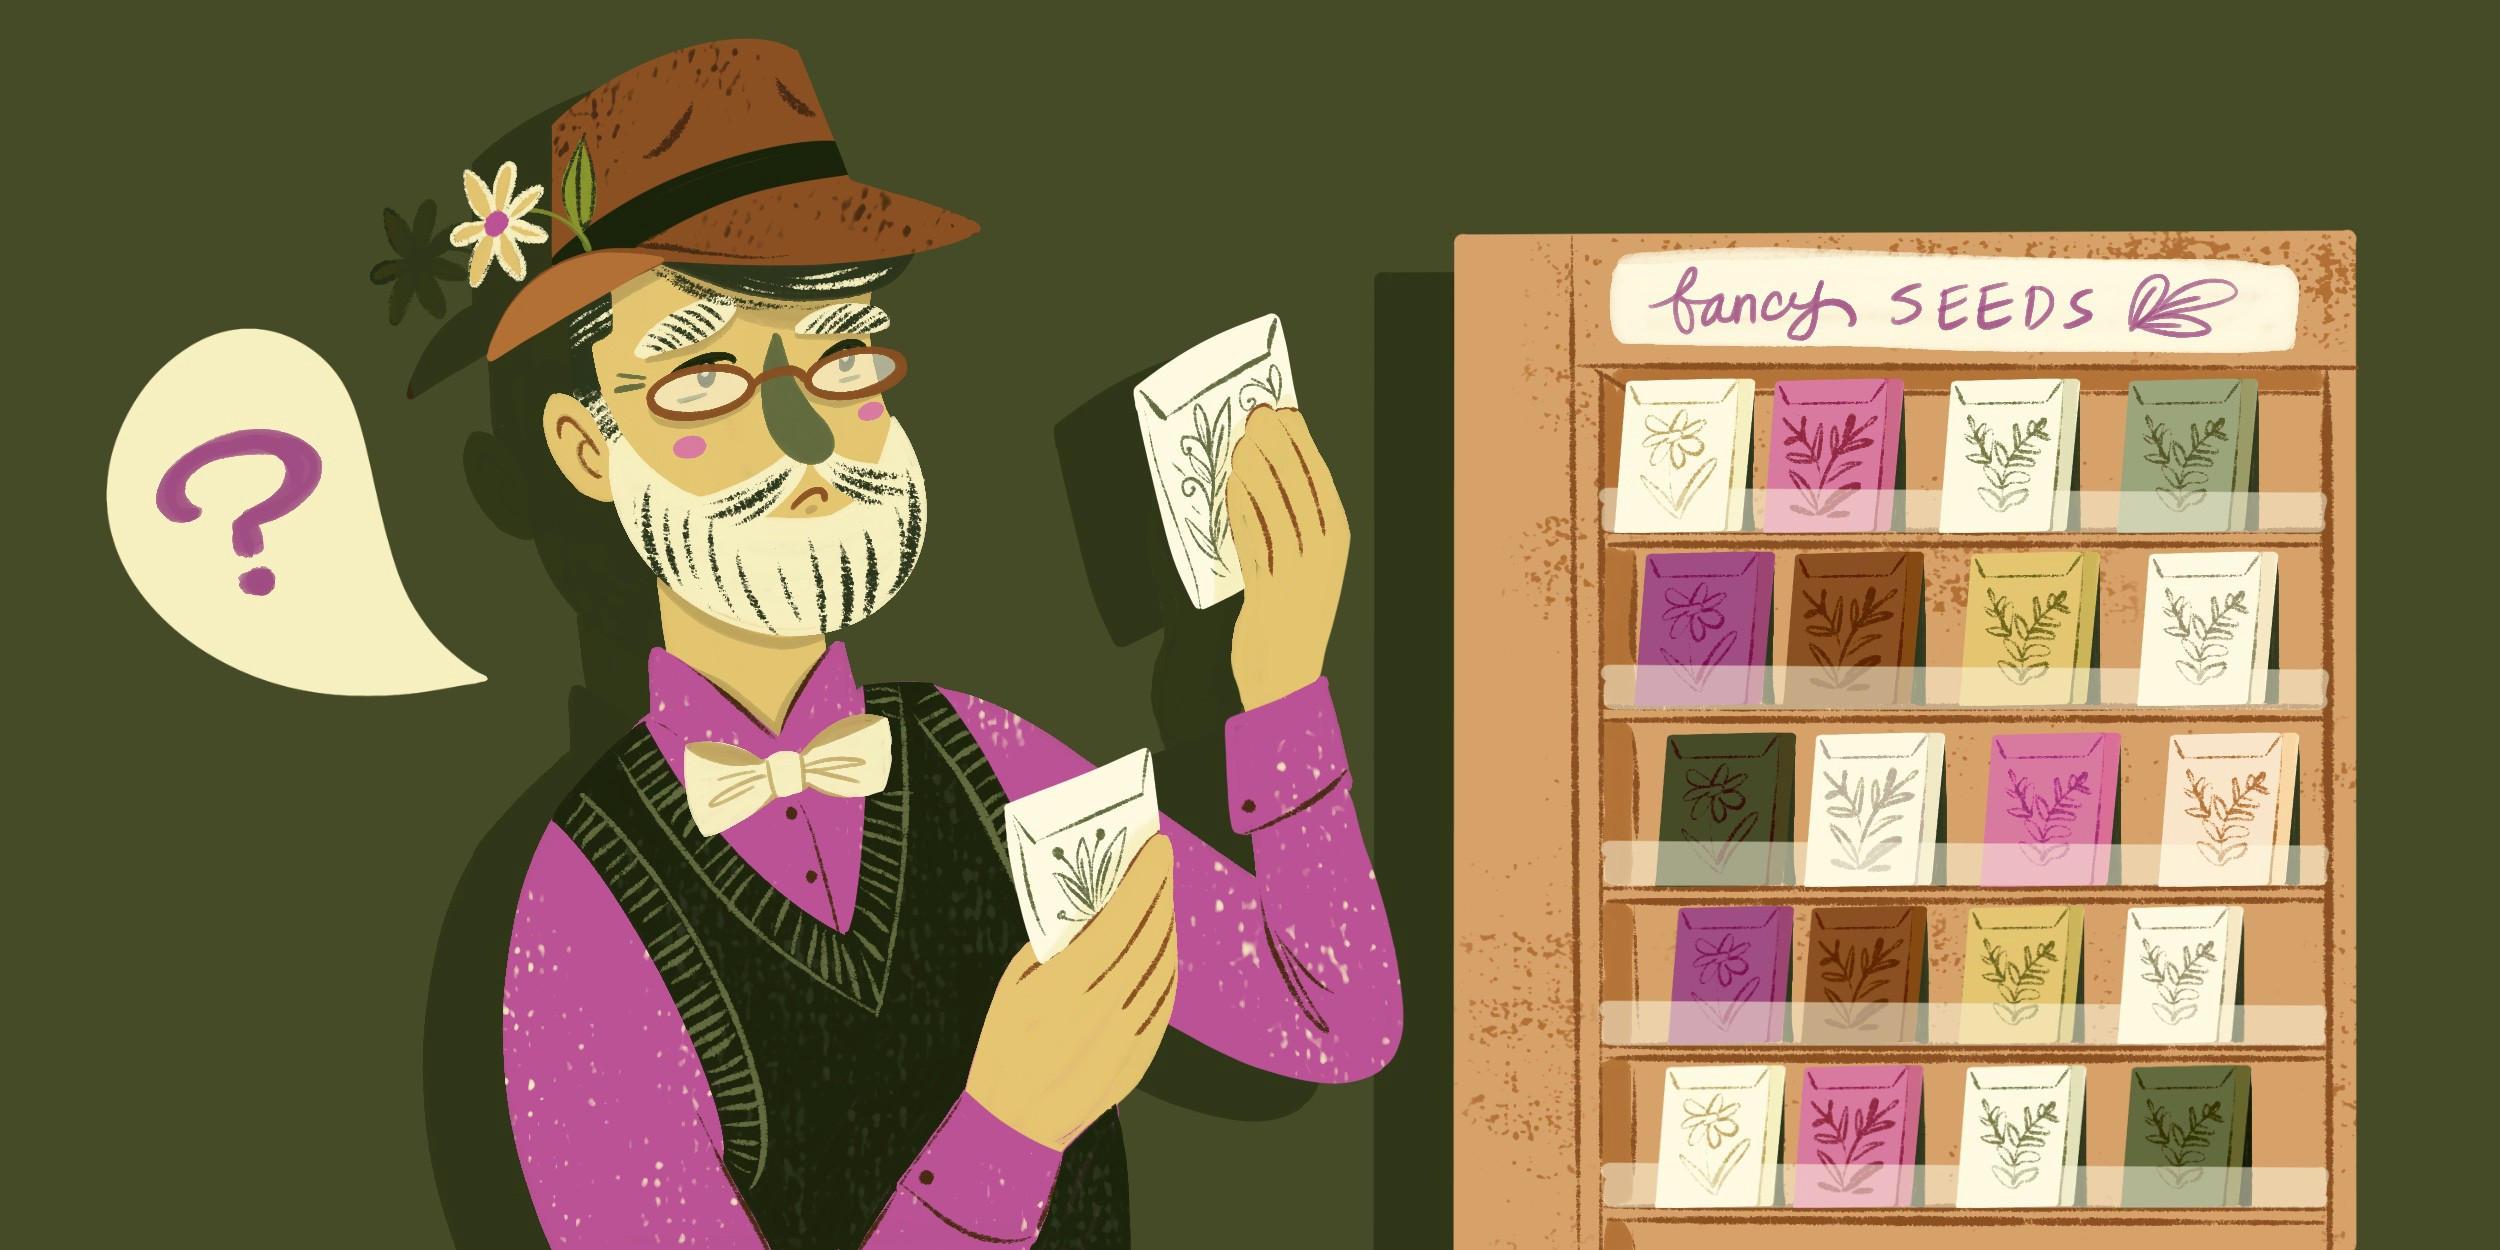 Illustration of a dapper man with a beard looking over two seed packets. There's a display next to him with many seed packets and he has a speech bubble with a question mark.